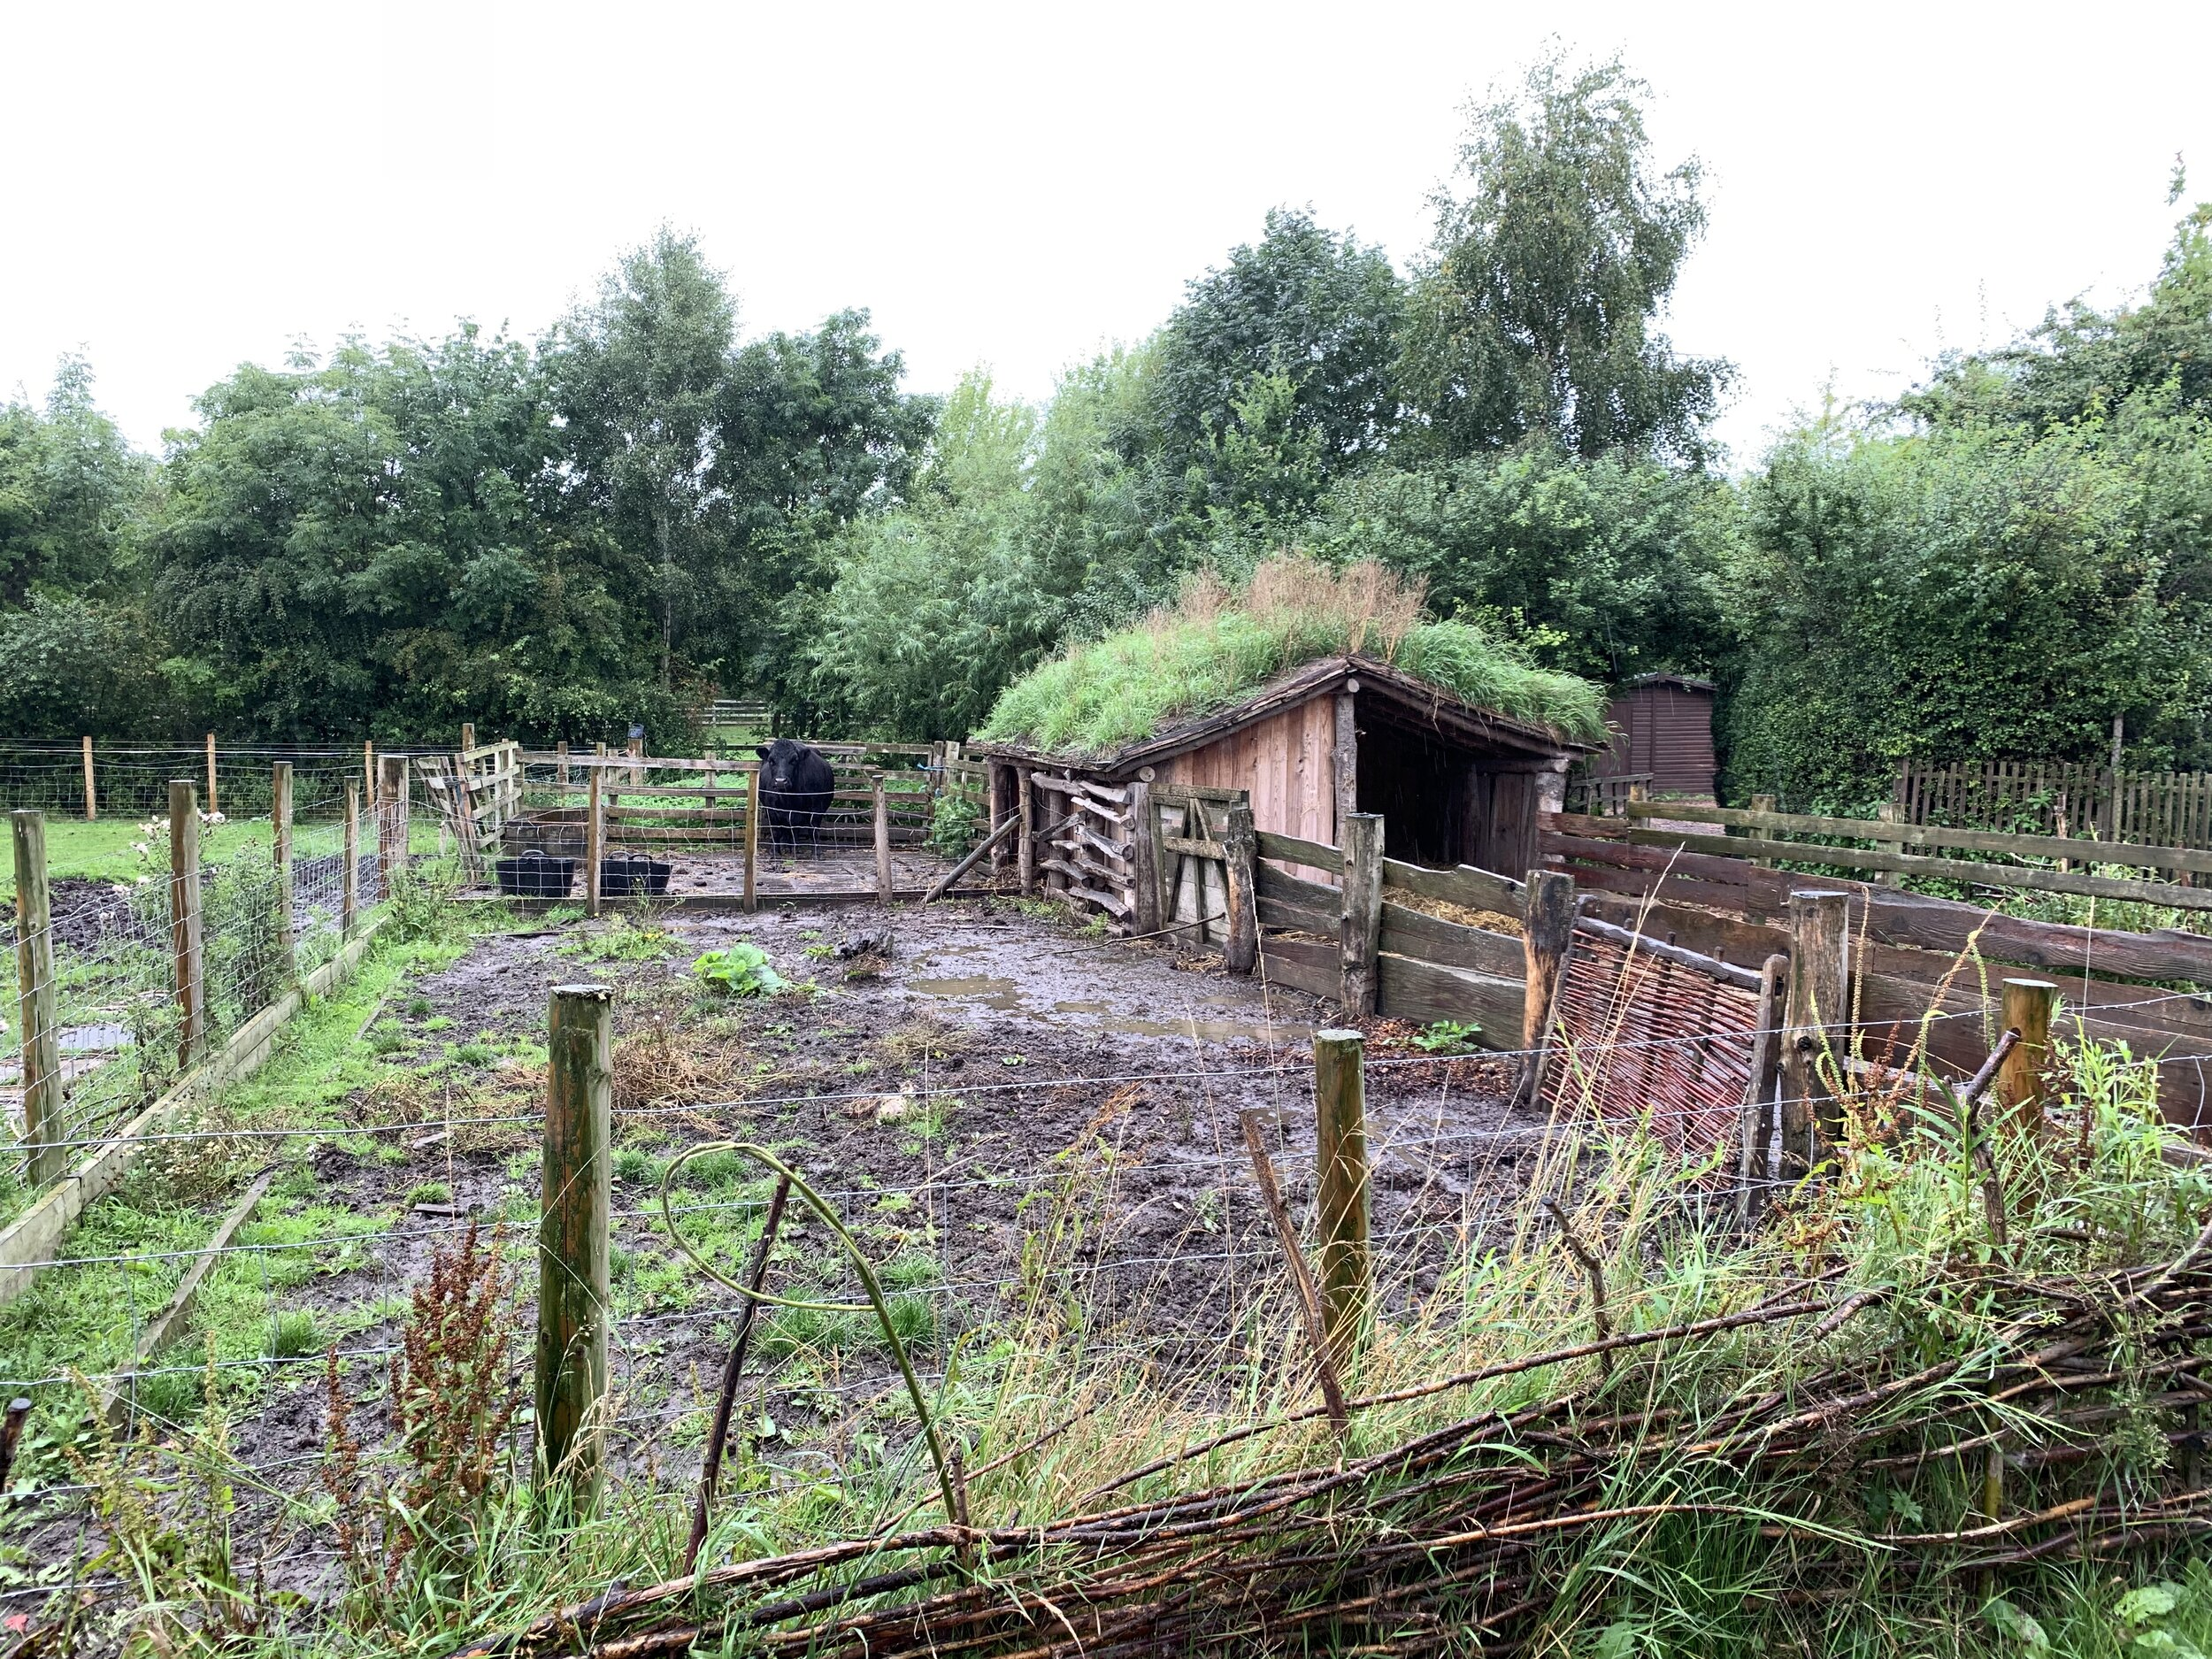 A typical Anglo-Saxon farm maintained at the Bede Museum in Jarrow, England. Photo by Roberta Ahmanson.